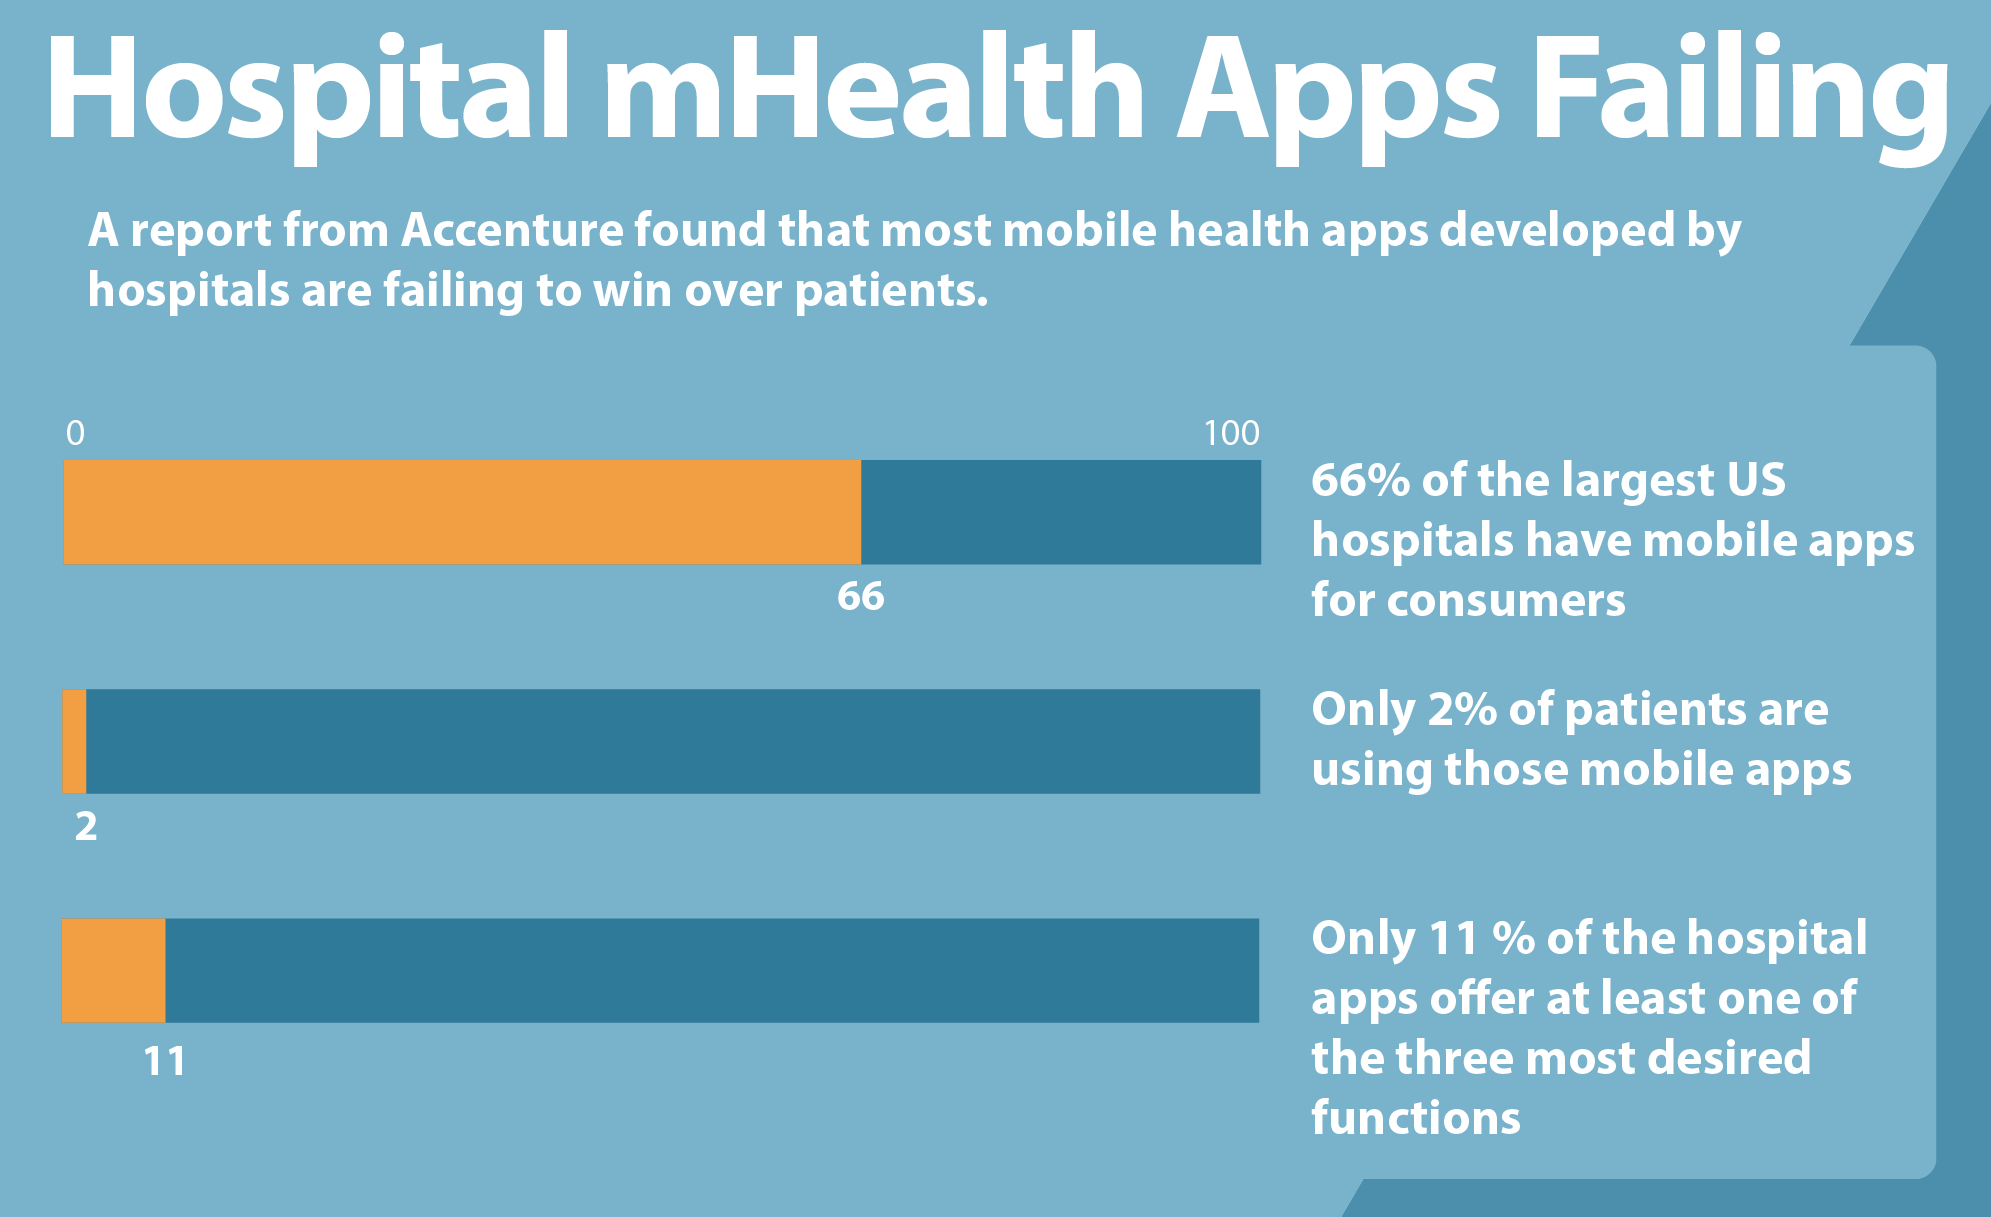 Hospital-mHealth-Apps-Failing-Infographic-digitalsplash.png